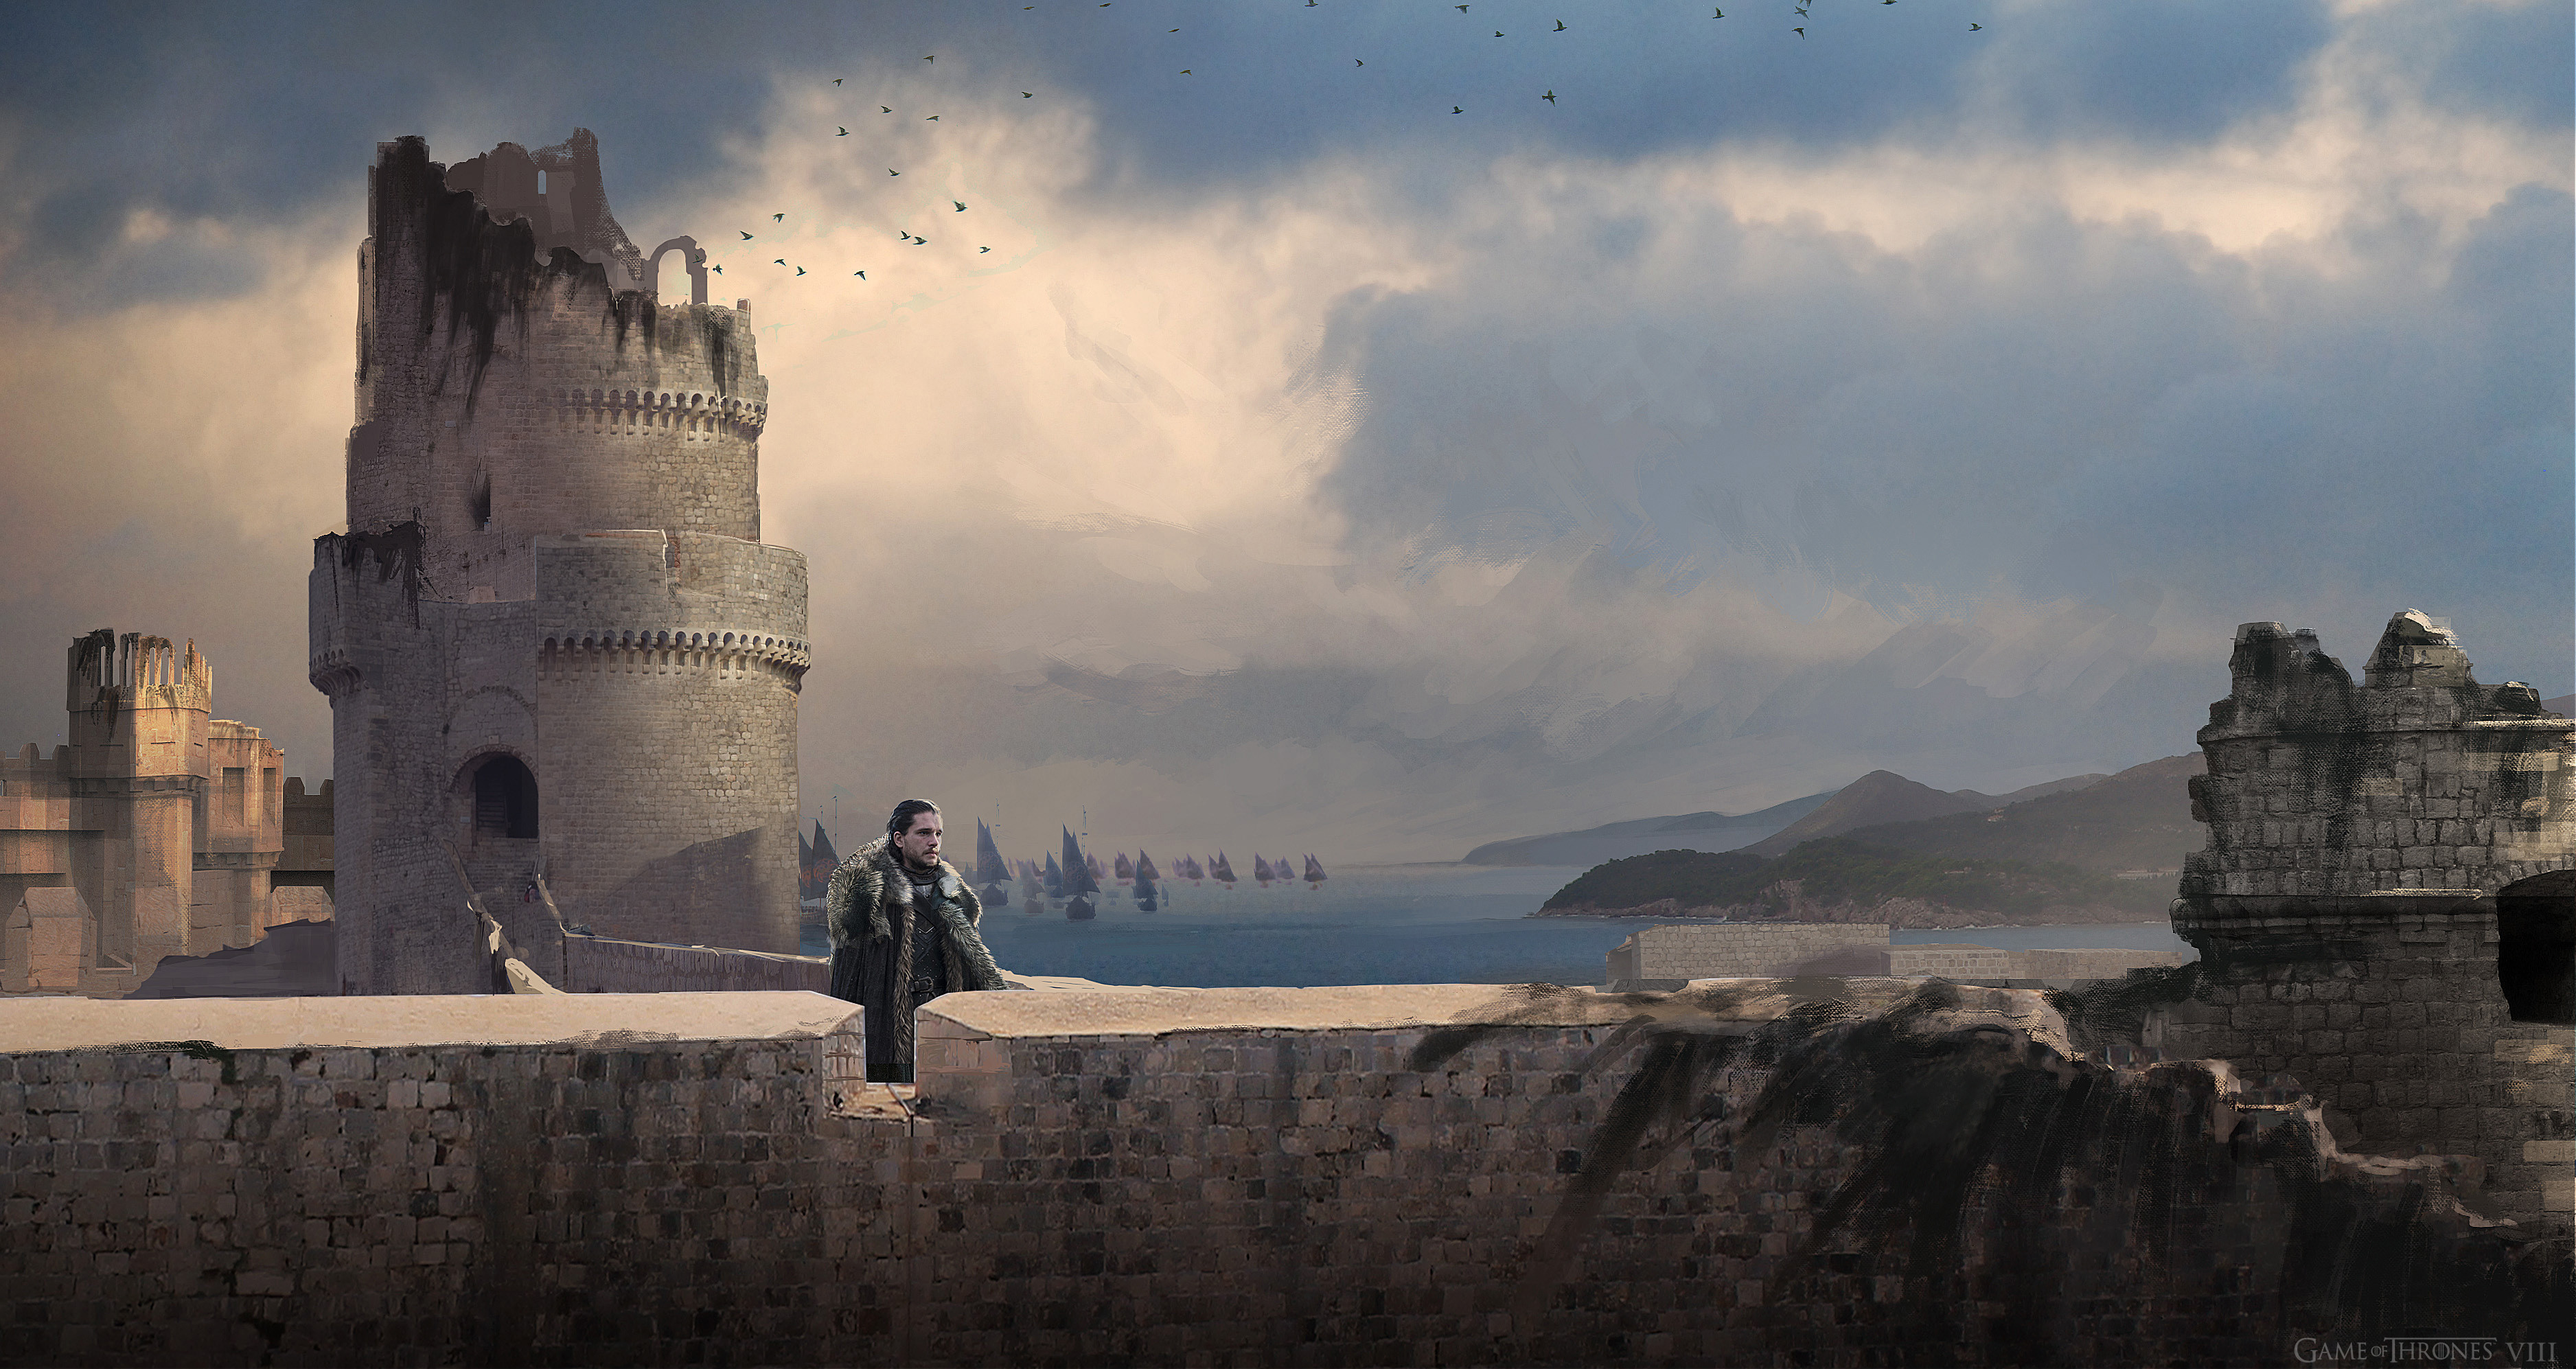 Jon is released towards the end of the episode and looks out across the docks at Kingslanding